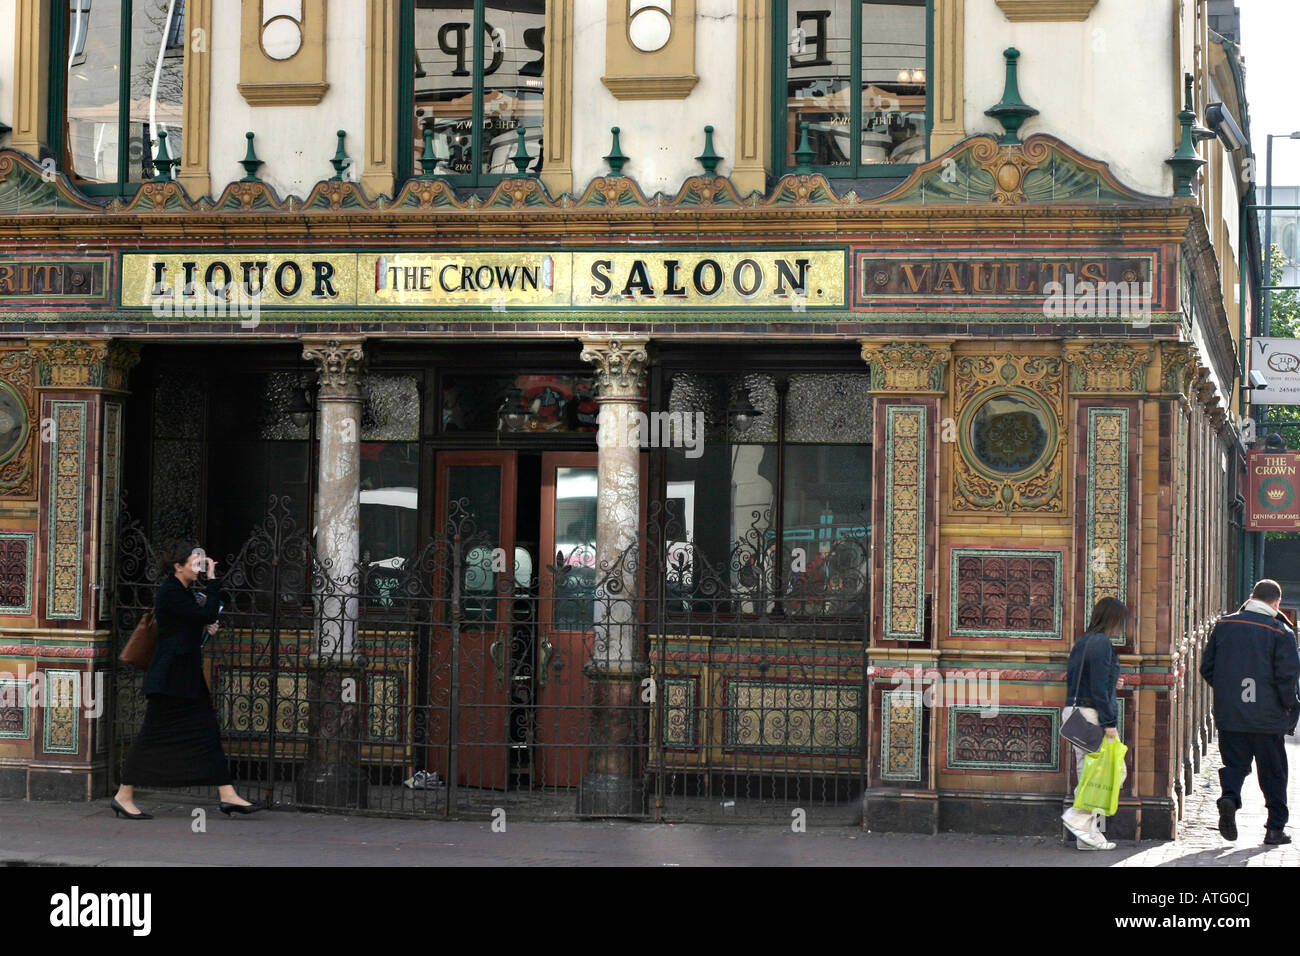 The Crown Saloon. The lower front facade of the famous Belfast landmark of Crown Liquor Saloon Bar Pedestrians walk - Stock Image